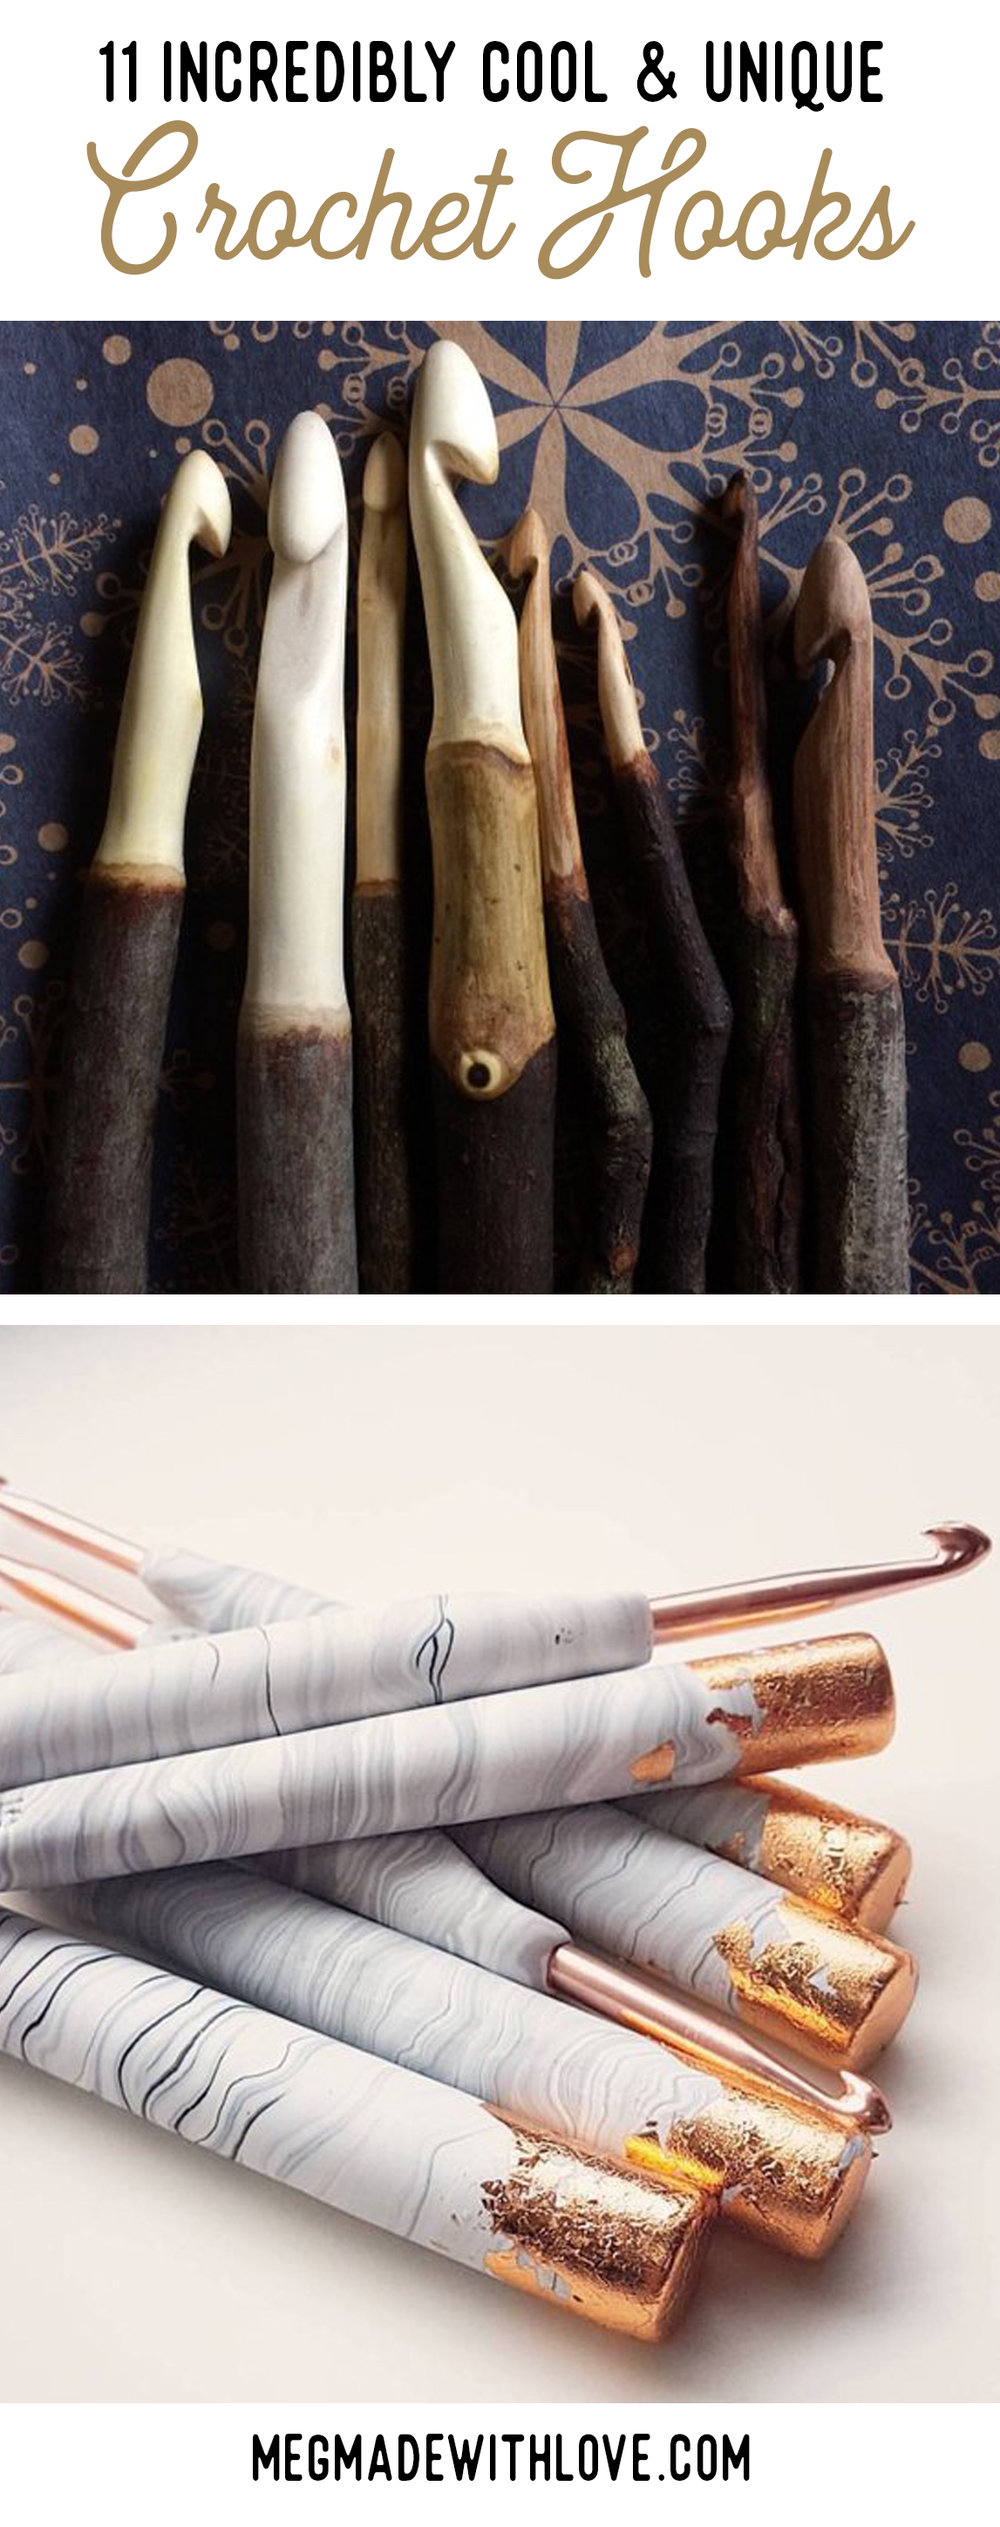 Crochet hooks - Megmade with Love